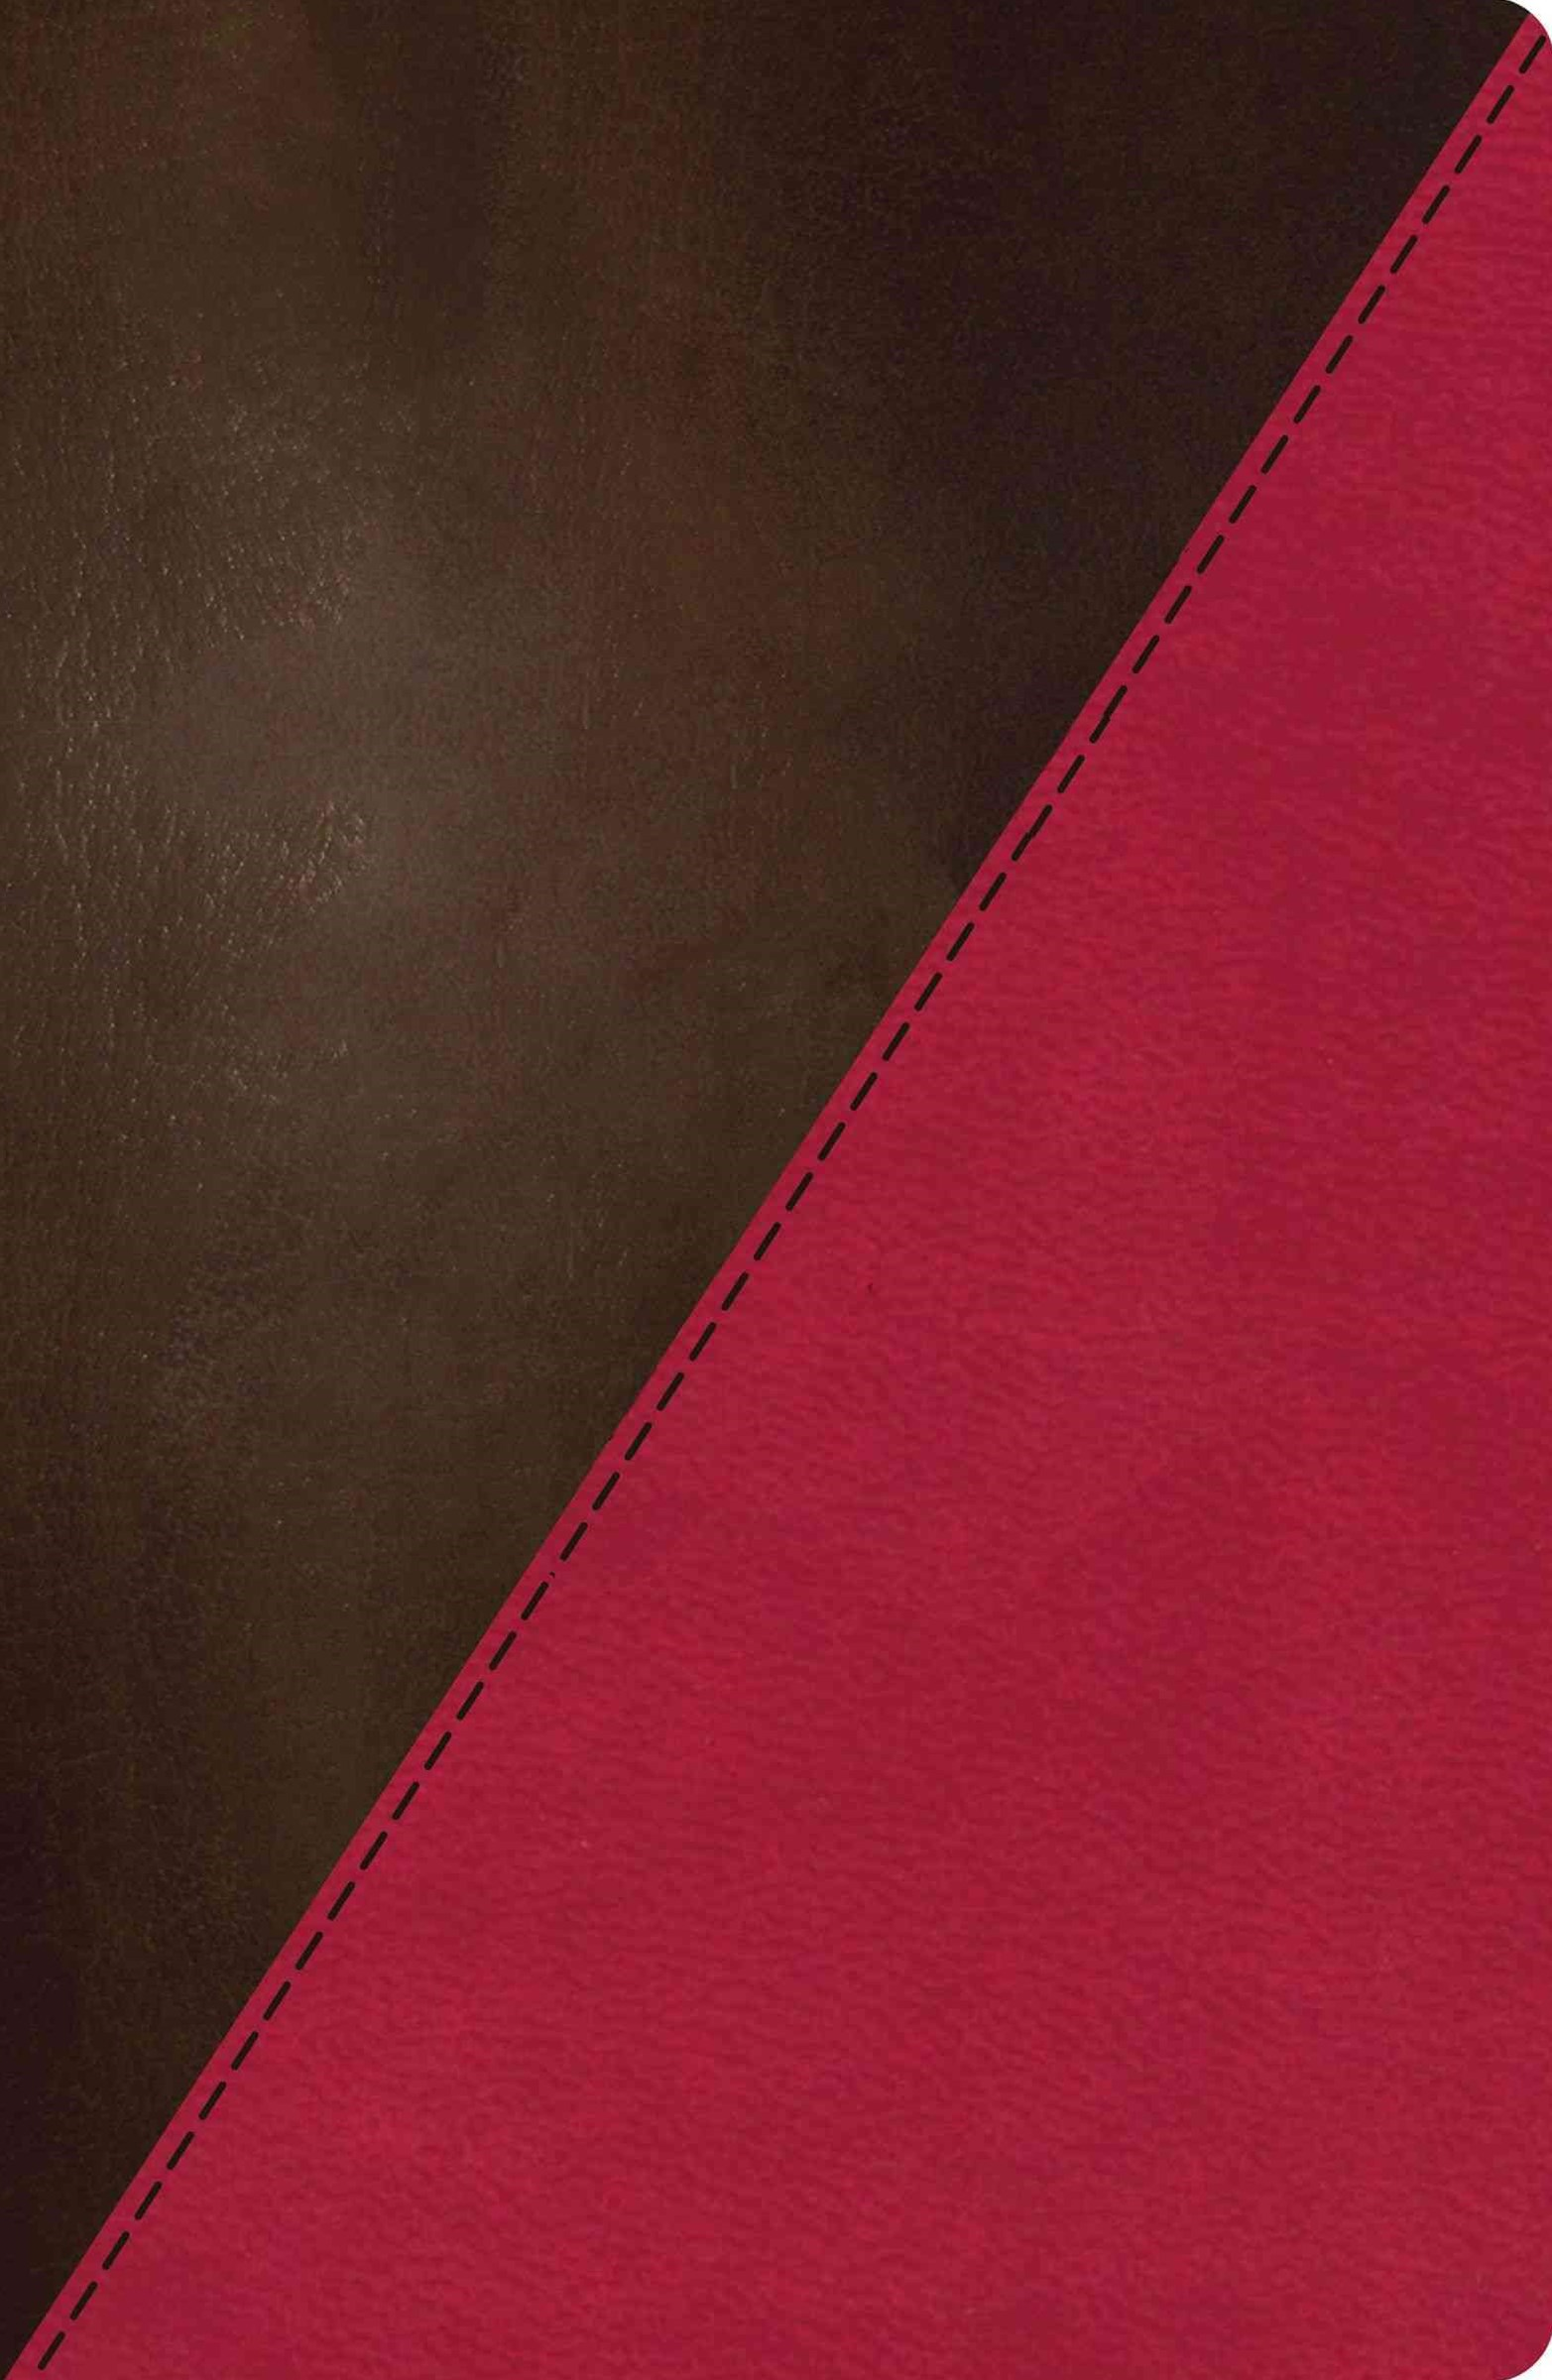 NKJV Study Bible, Imitation Leather, Pink/Brown, Indexed